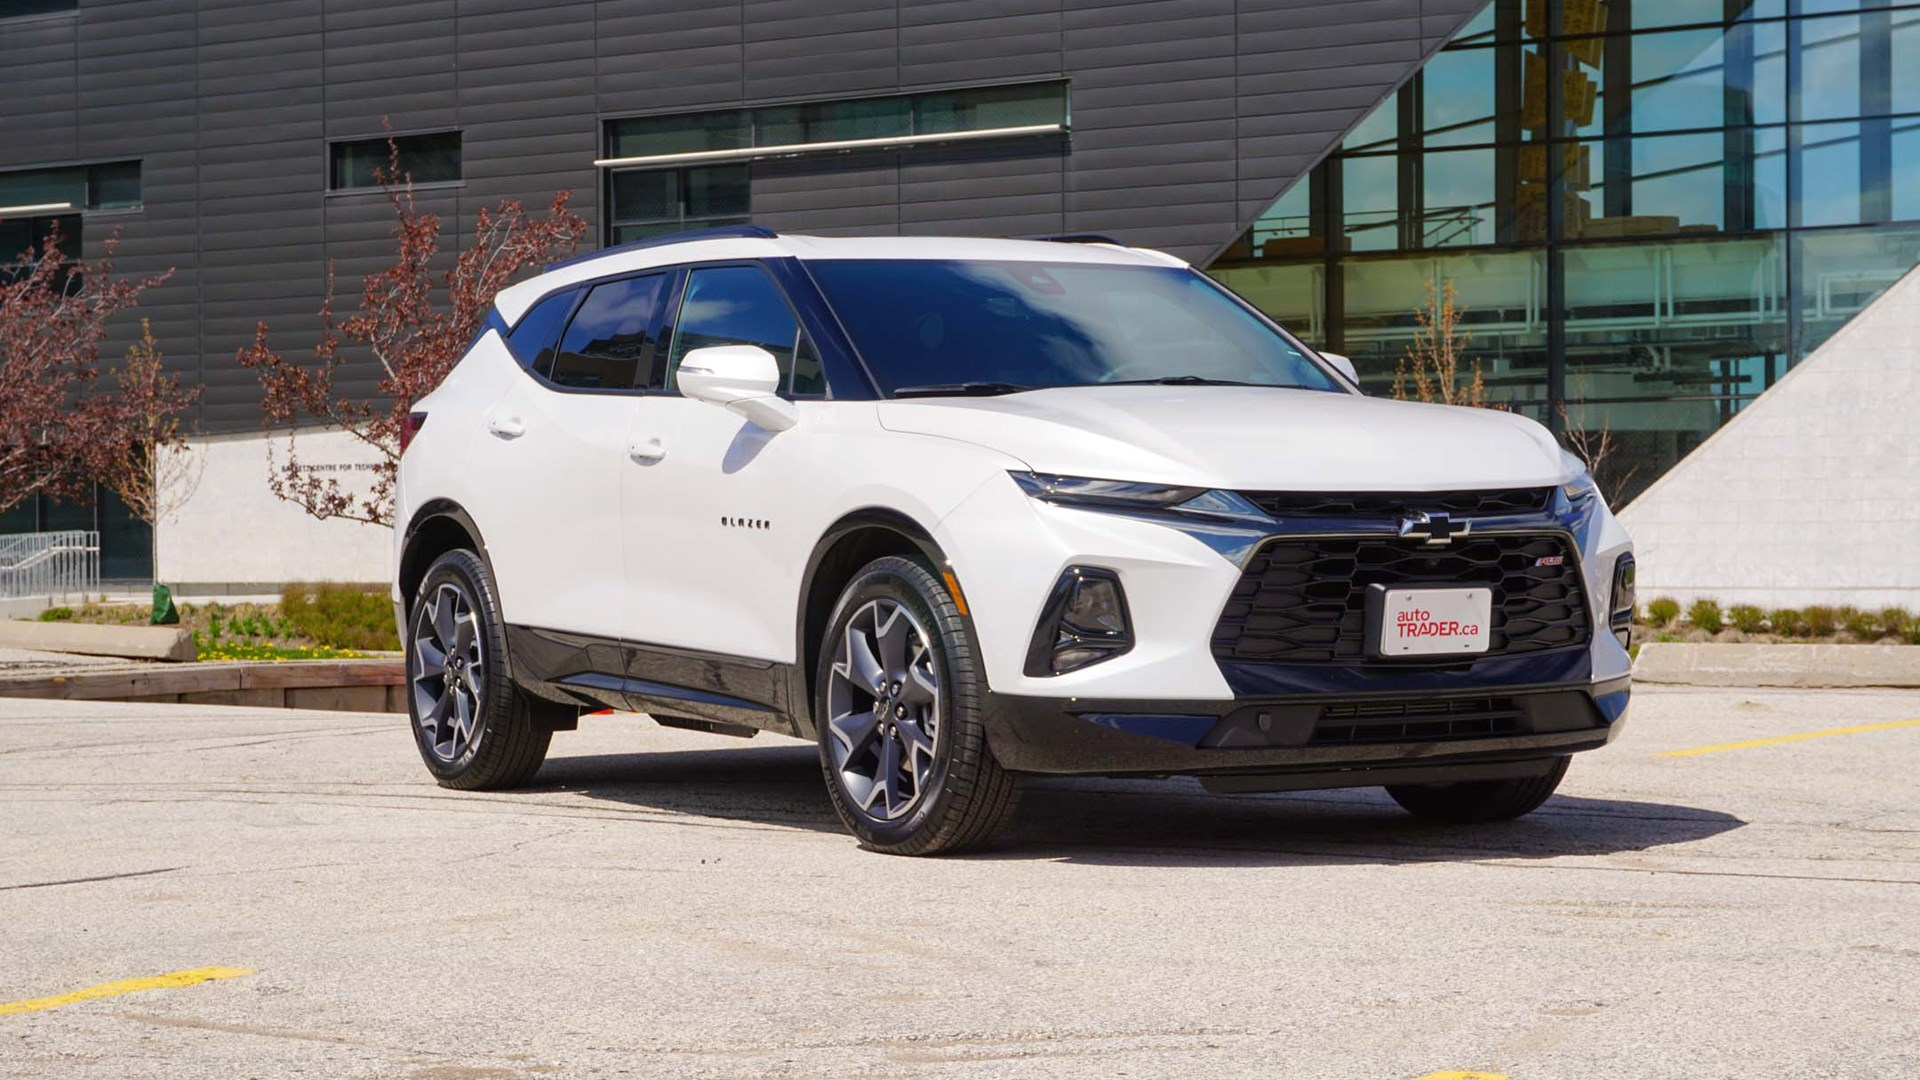 2020 Chevrolet Blazer Rs Review And Video Expert Reviews Autotrader Ca